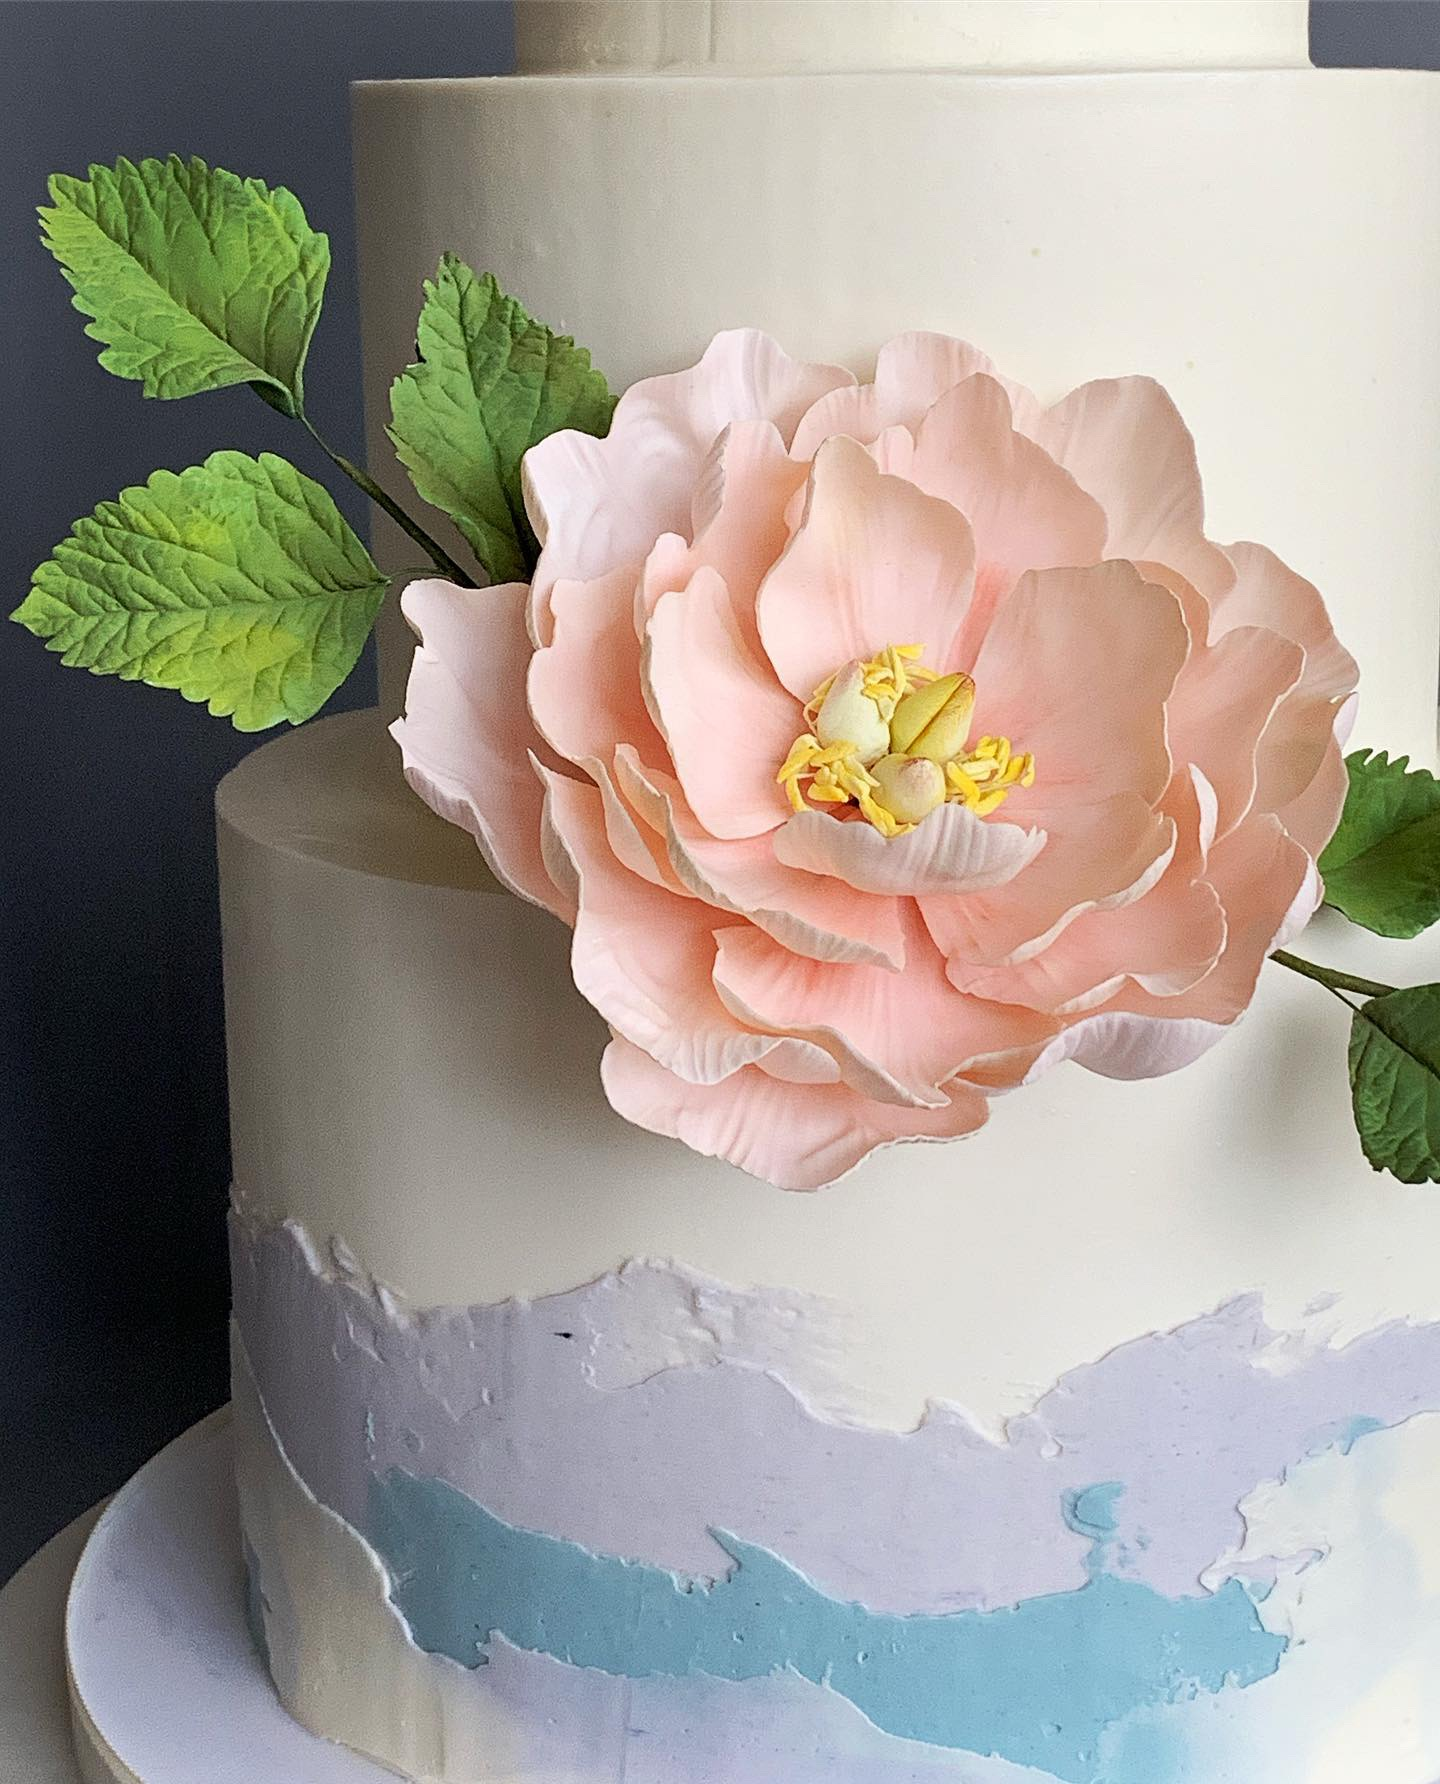 Sugar peony with sugar rose leaves. Image copyright Carla Schier.